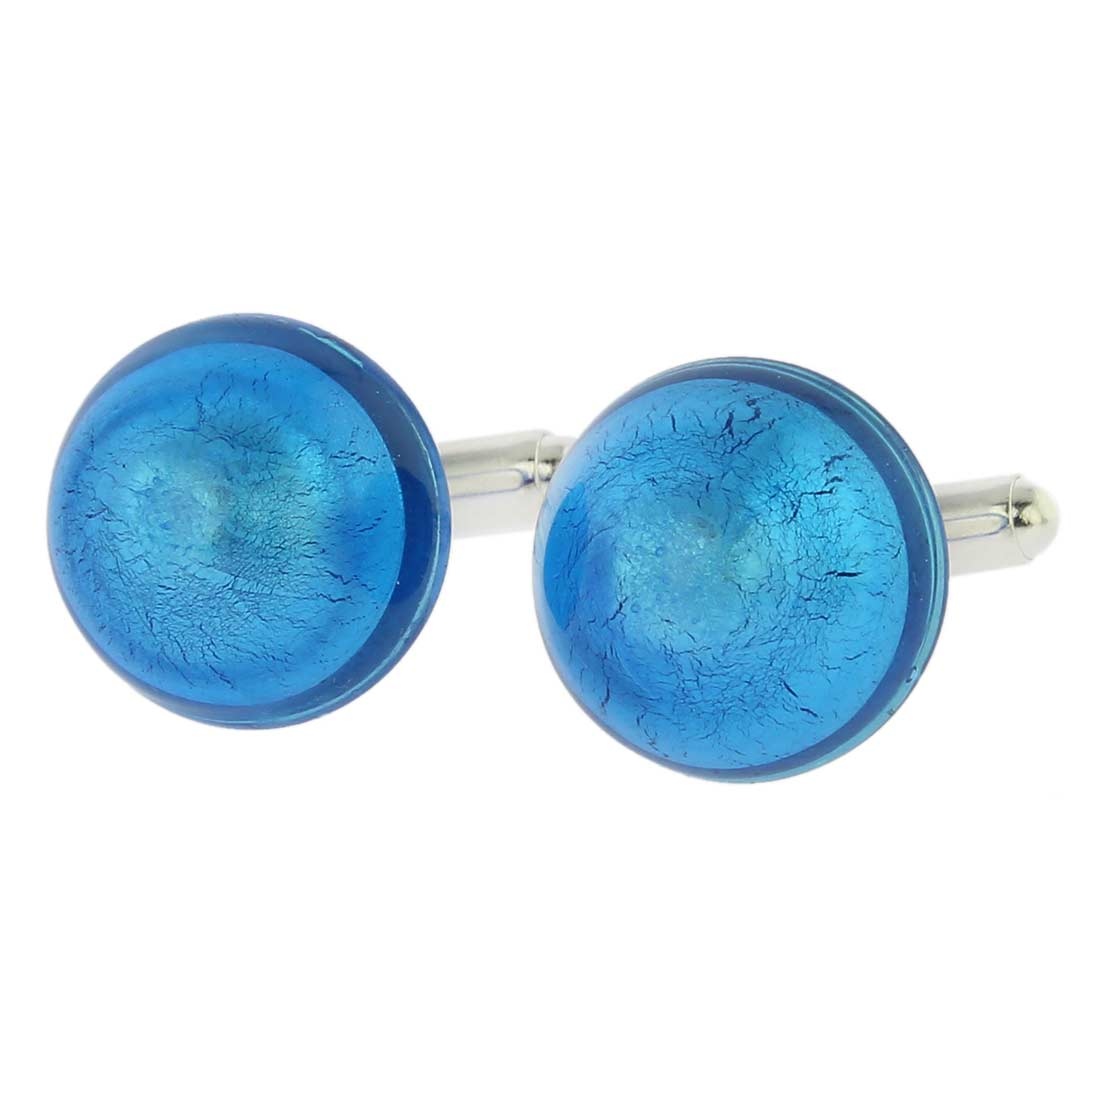 Venetian Dream Cufflinks - Aqua Blue